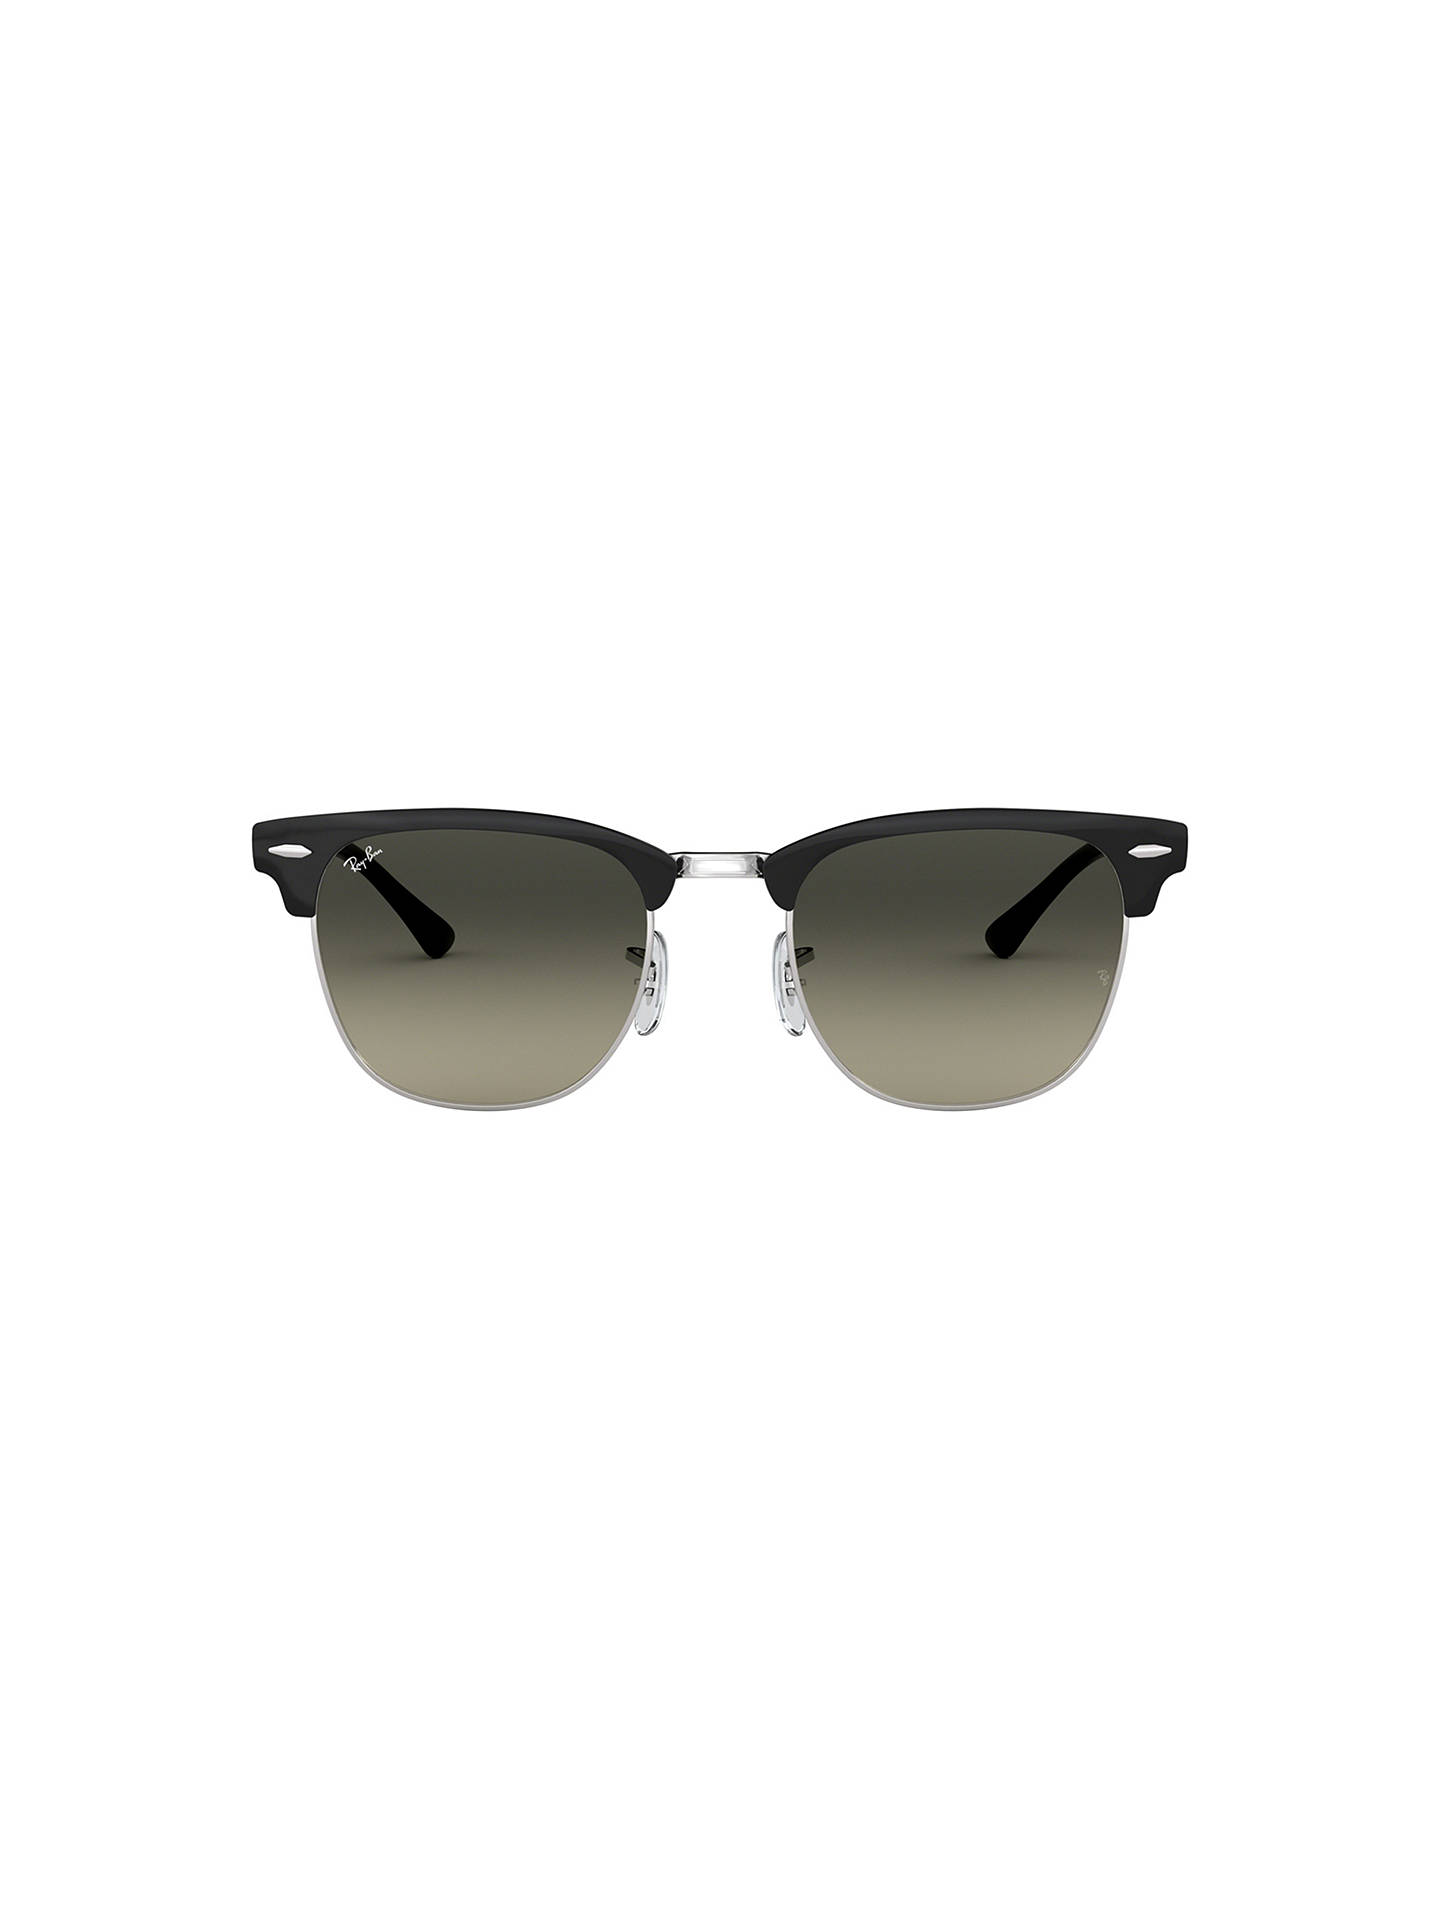 e253bc16a1 Ray-Ban RB3716 Unisex Square Sunglasses at John Lewis   Partners